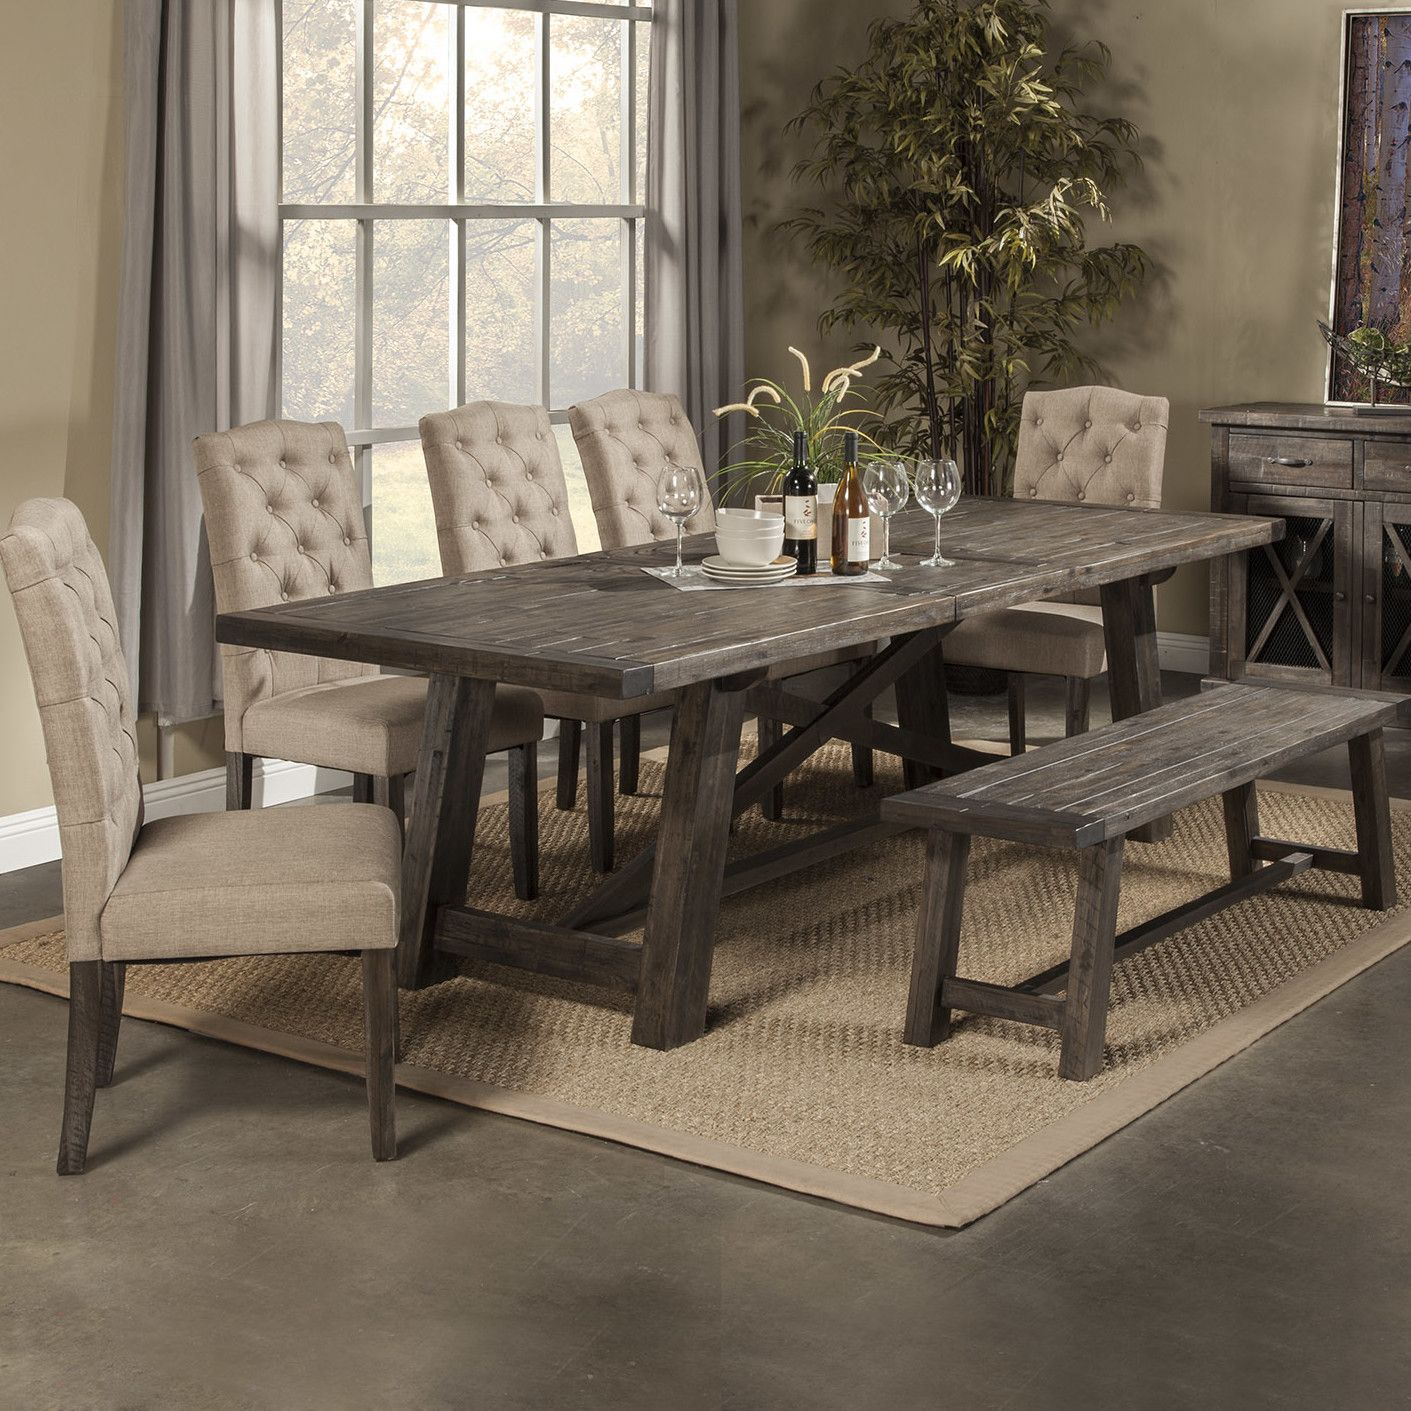 Dining Room Sets Leather Chairs Captivating Stylish Dining Sets Perfect For Growing Families  Dining Sets Design Inspiration